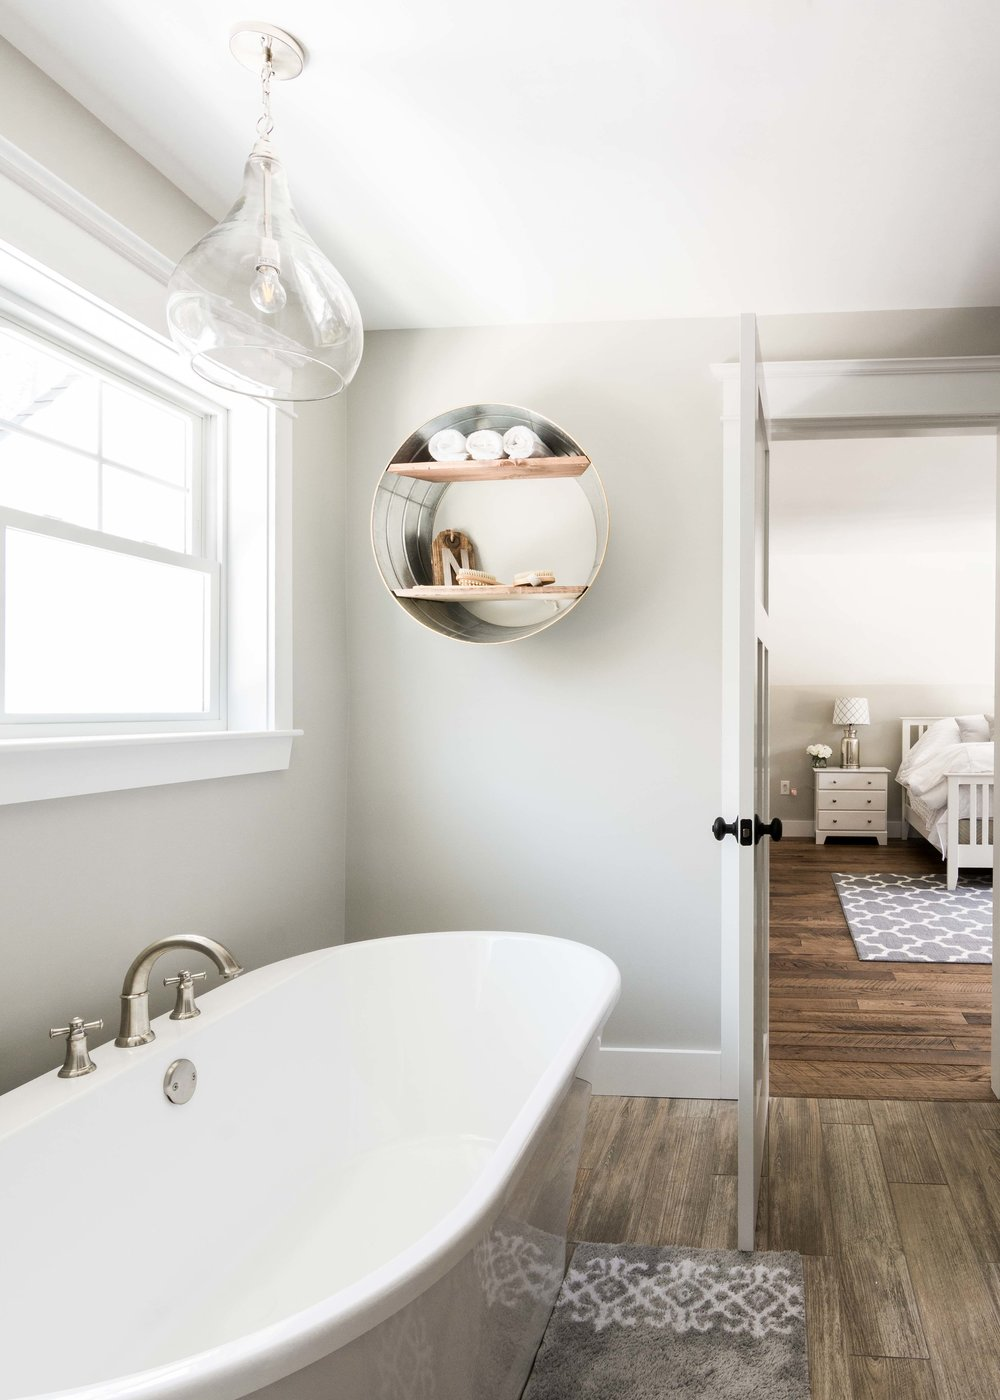 Birchwood Farmhouse, Gorham, Maine, Master Bathroom with Soaker Tub